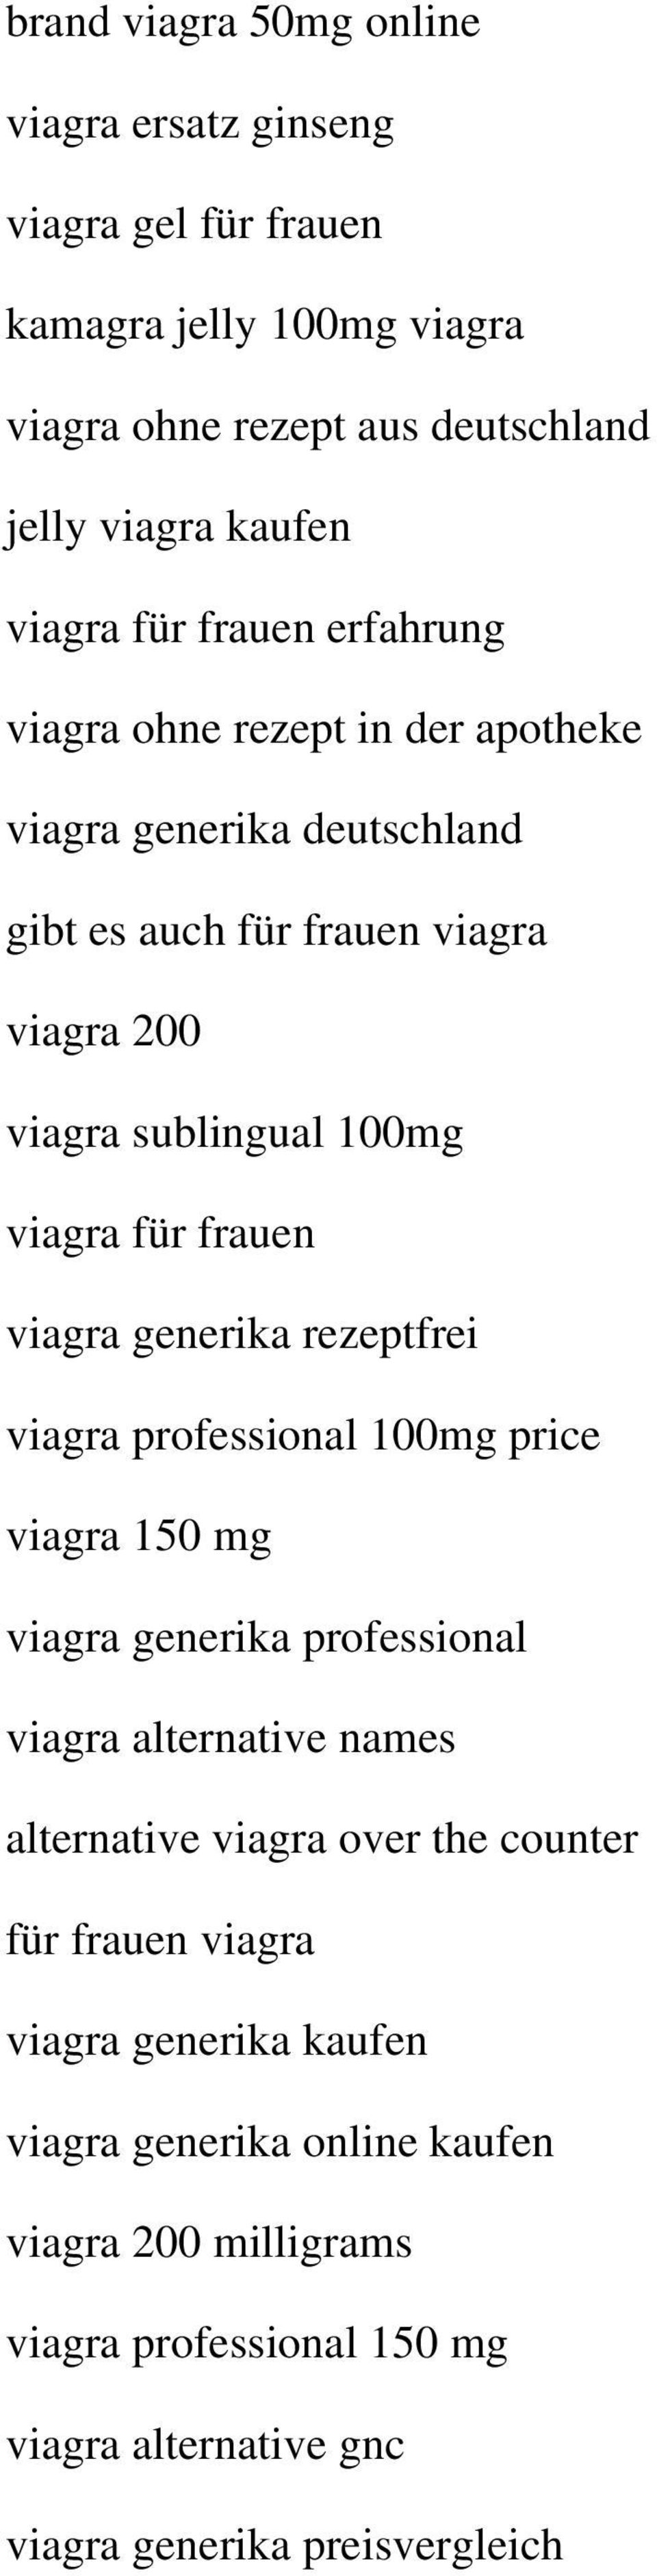 viagra generika rezeptfrei viagra professional 100mg price viagra 150 mg viagra generika professional viagra alternative names alternative viagra over the counter